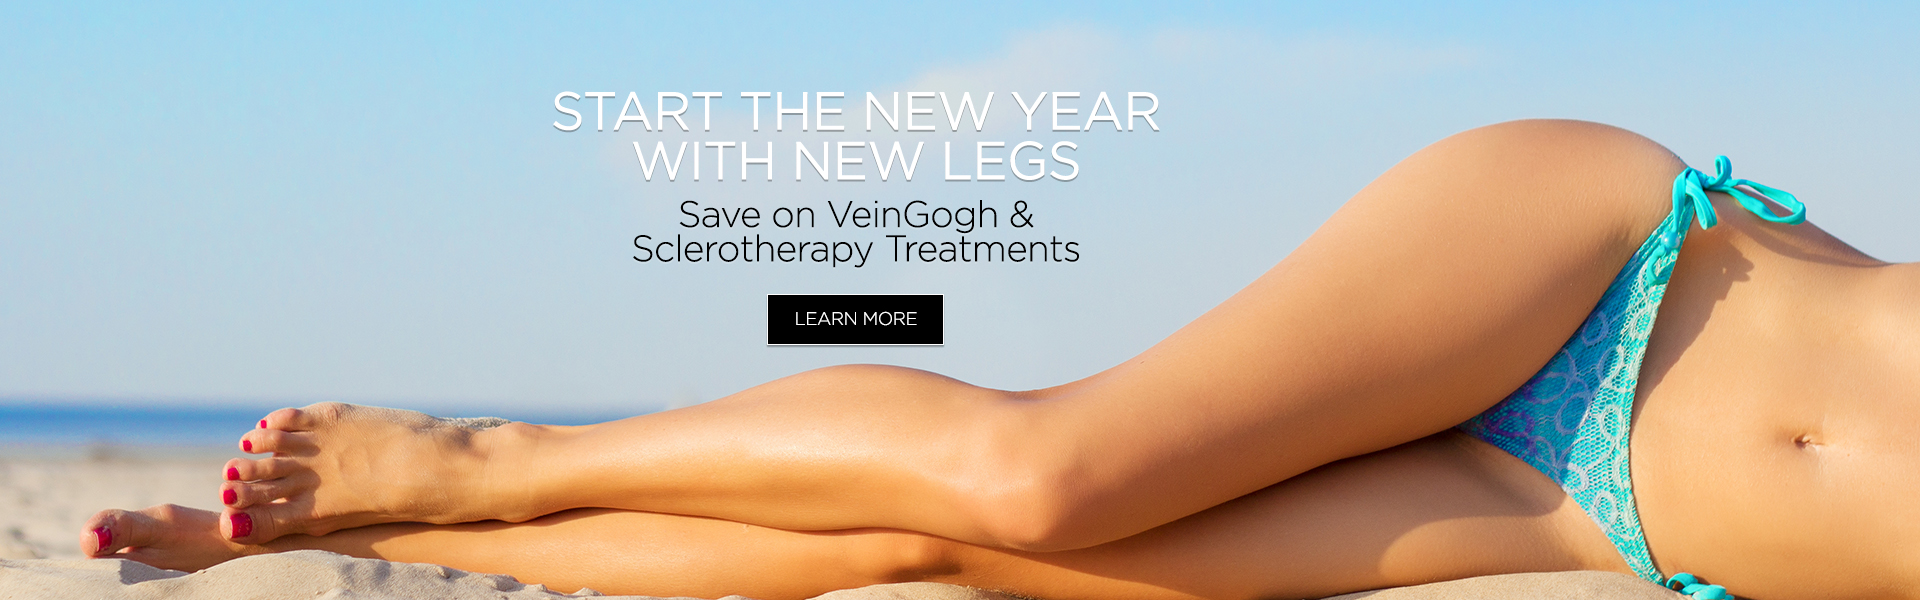 MIAMI Laser Vein Removal